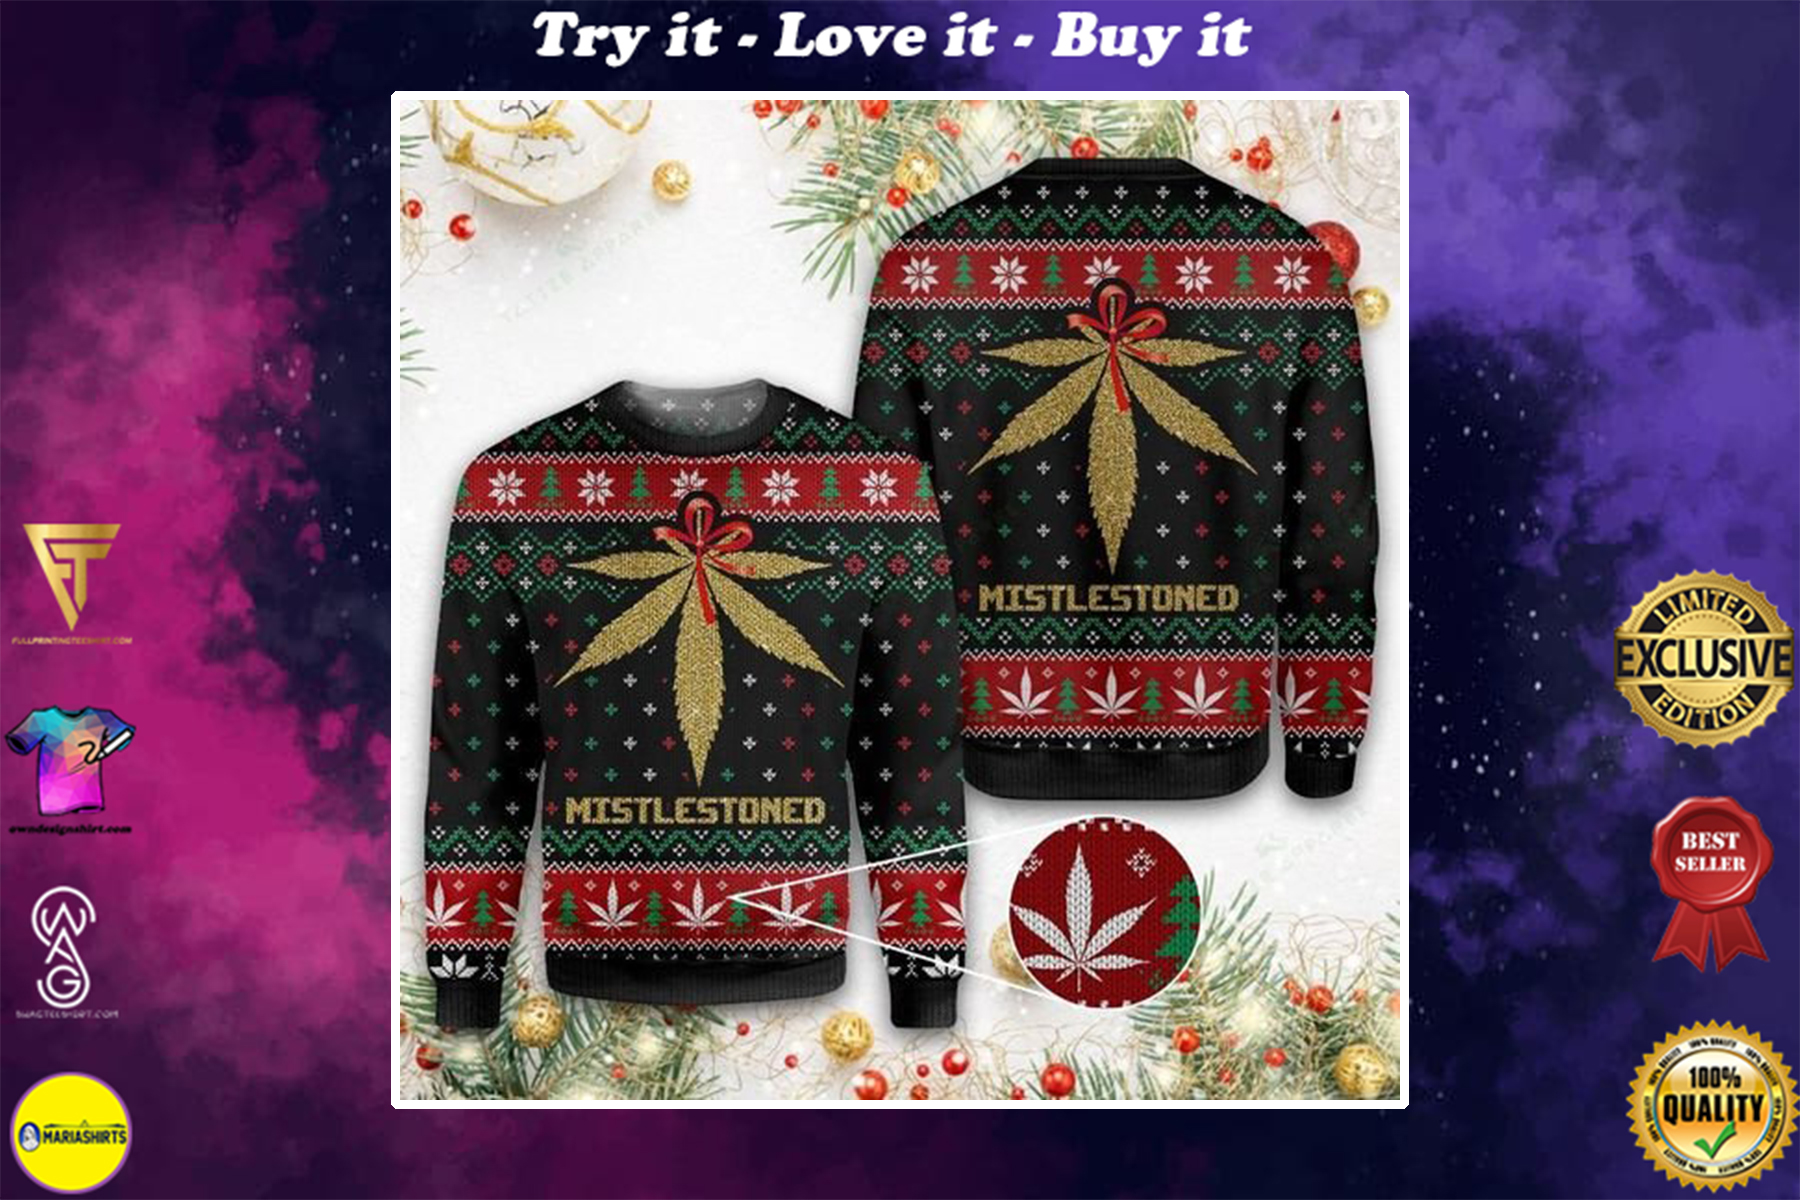 [special edition] merry christmas weed mistlestoned all over printed ugly christmas sweater - maria